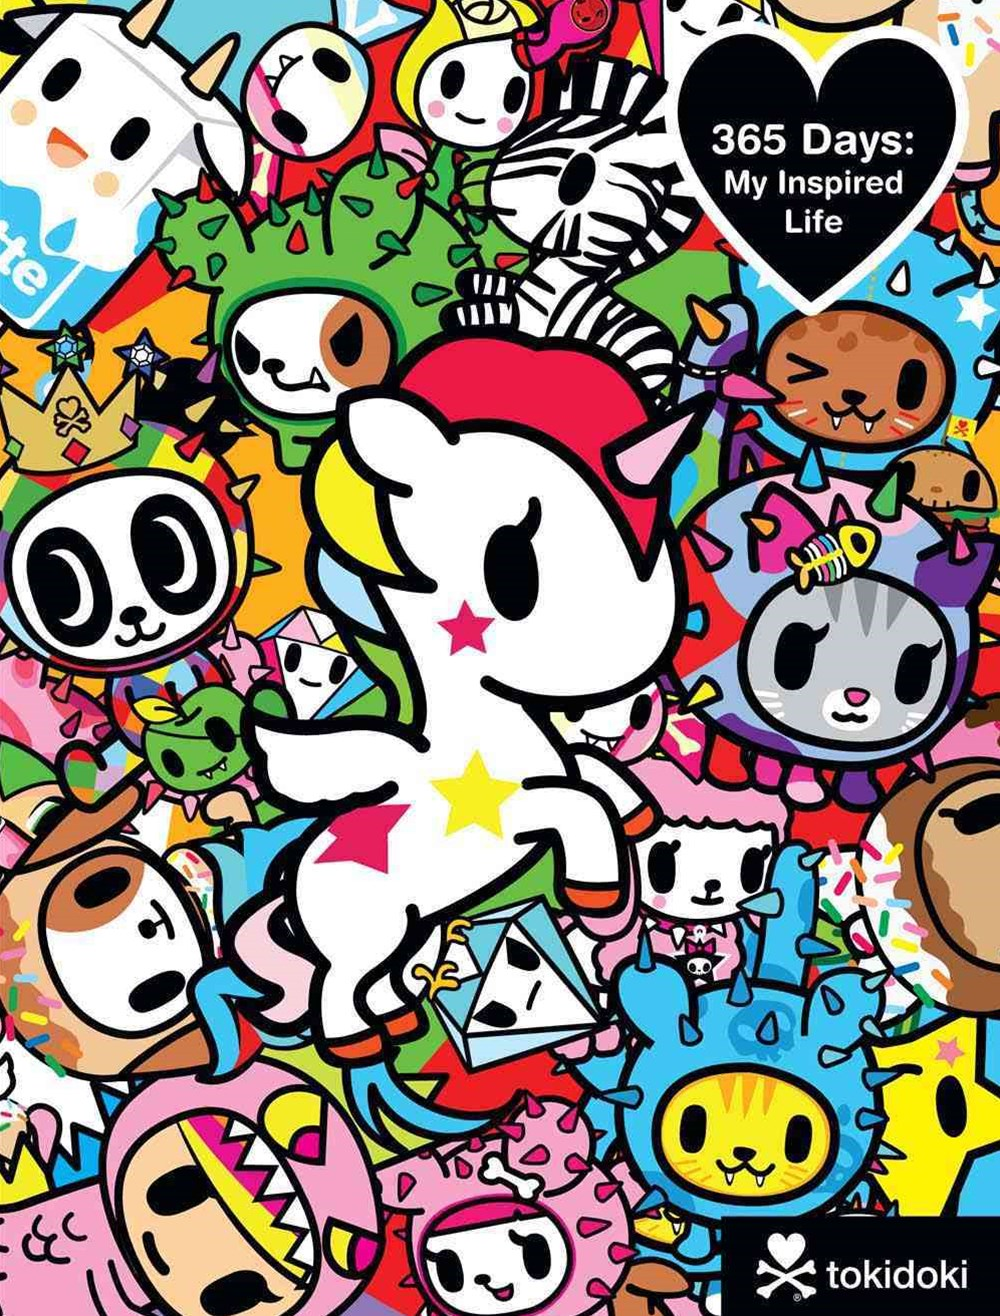 tokidoki 365 Days: My Inspired Life